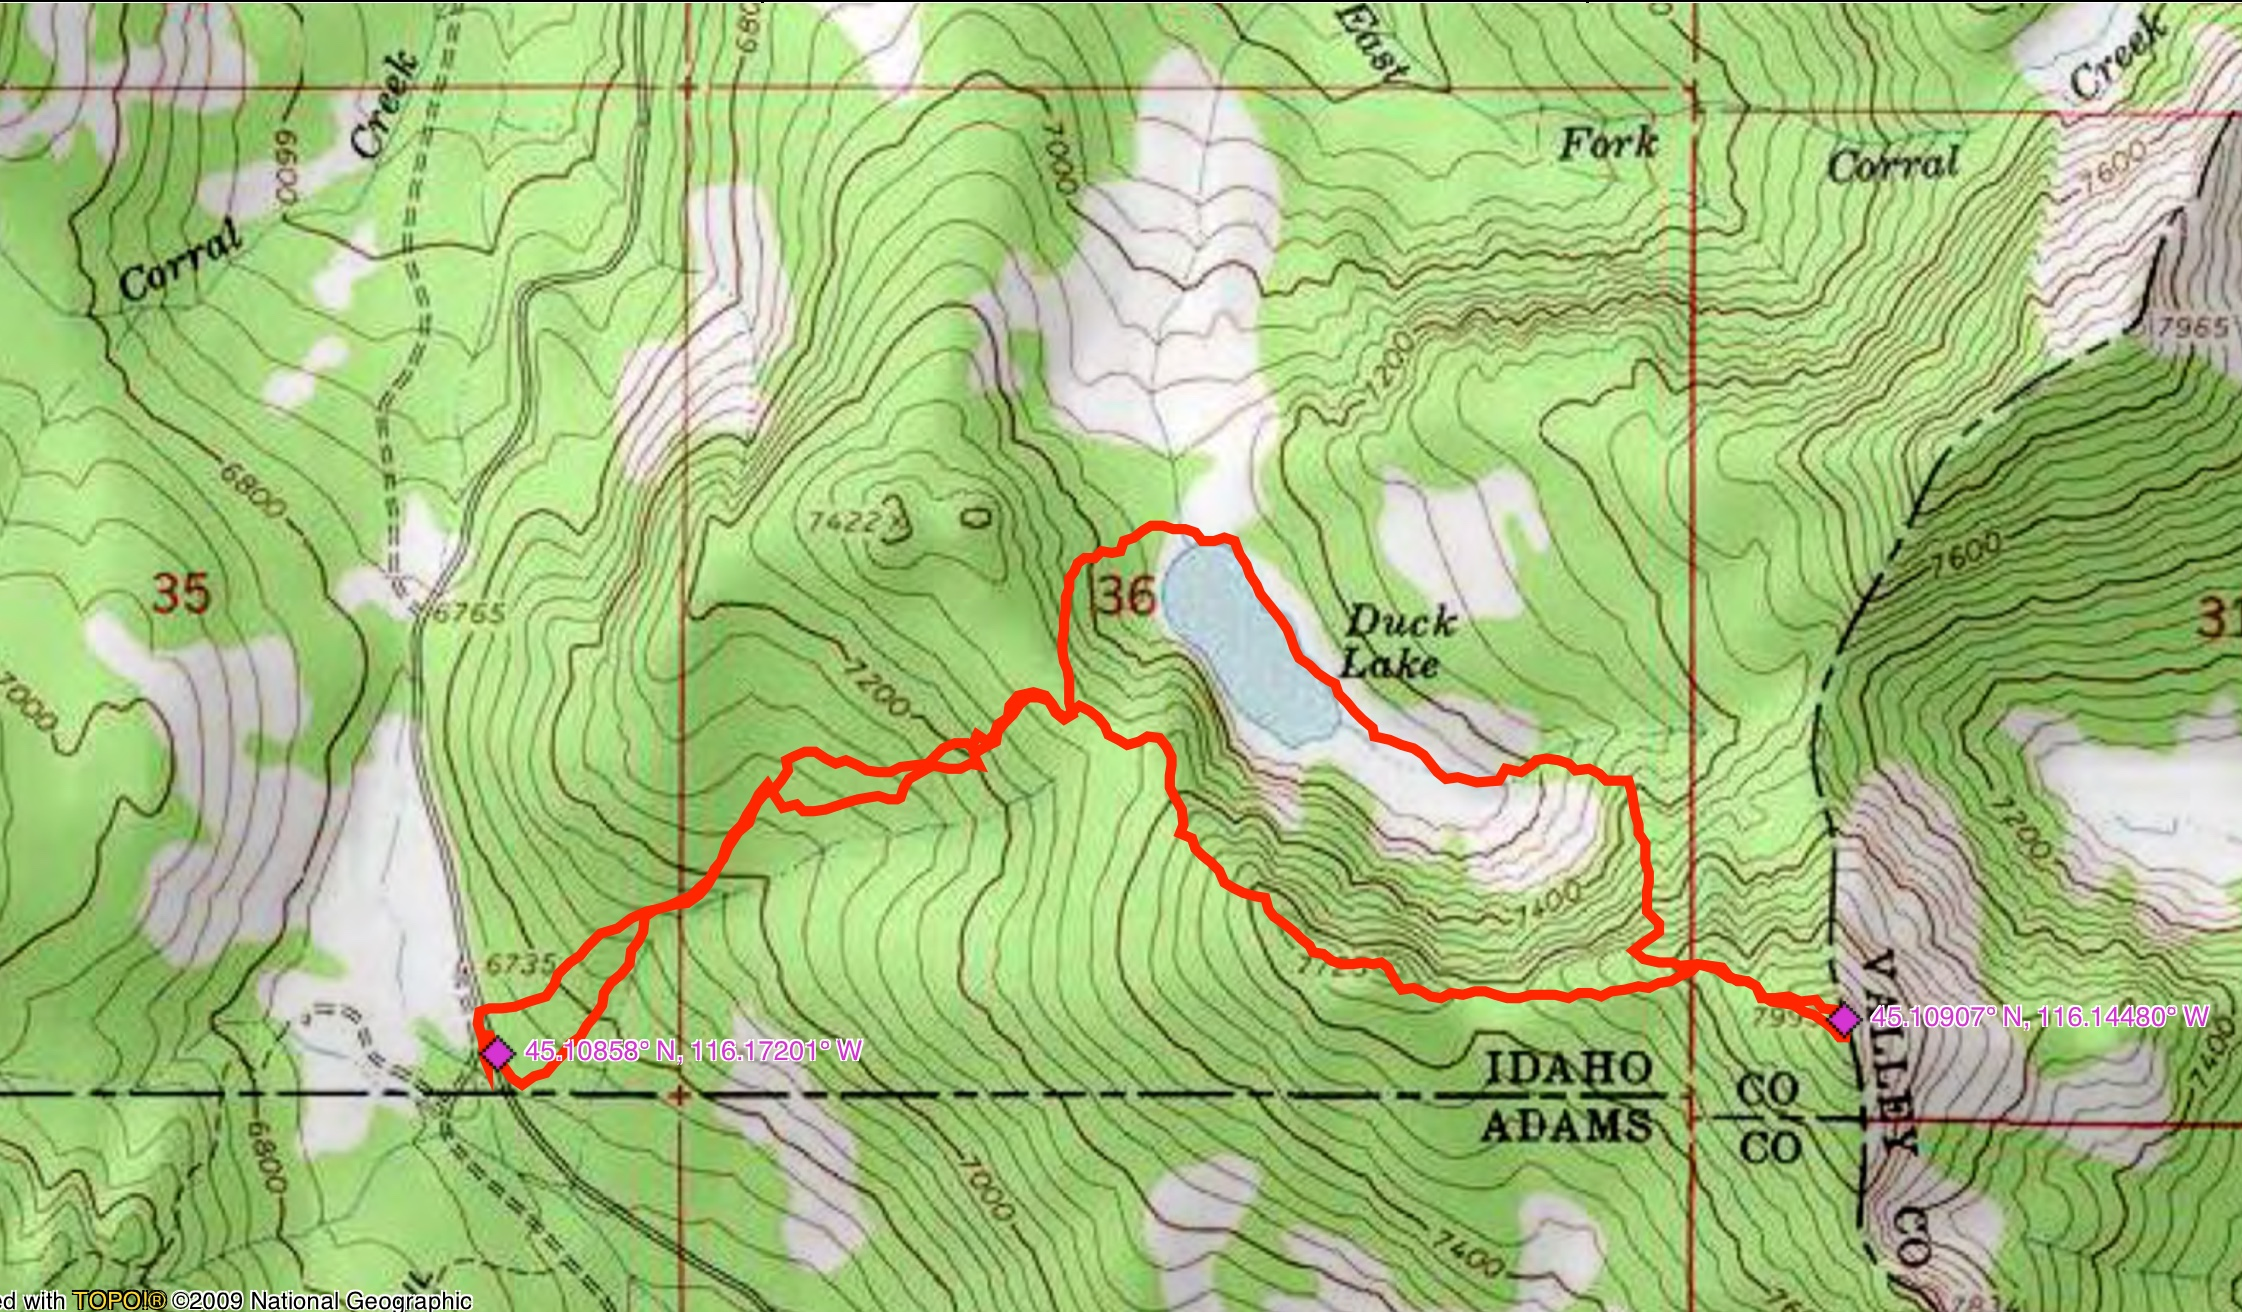 John Platt's GPS track to the summit of Duck Peak.